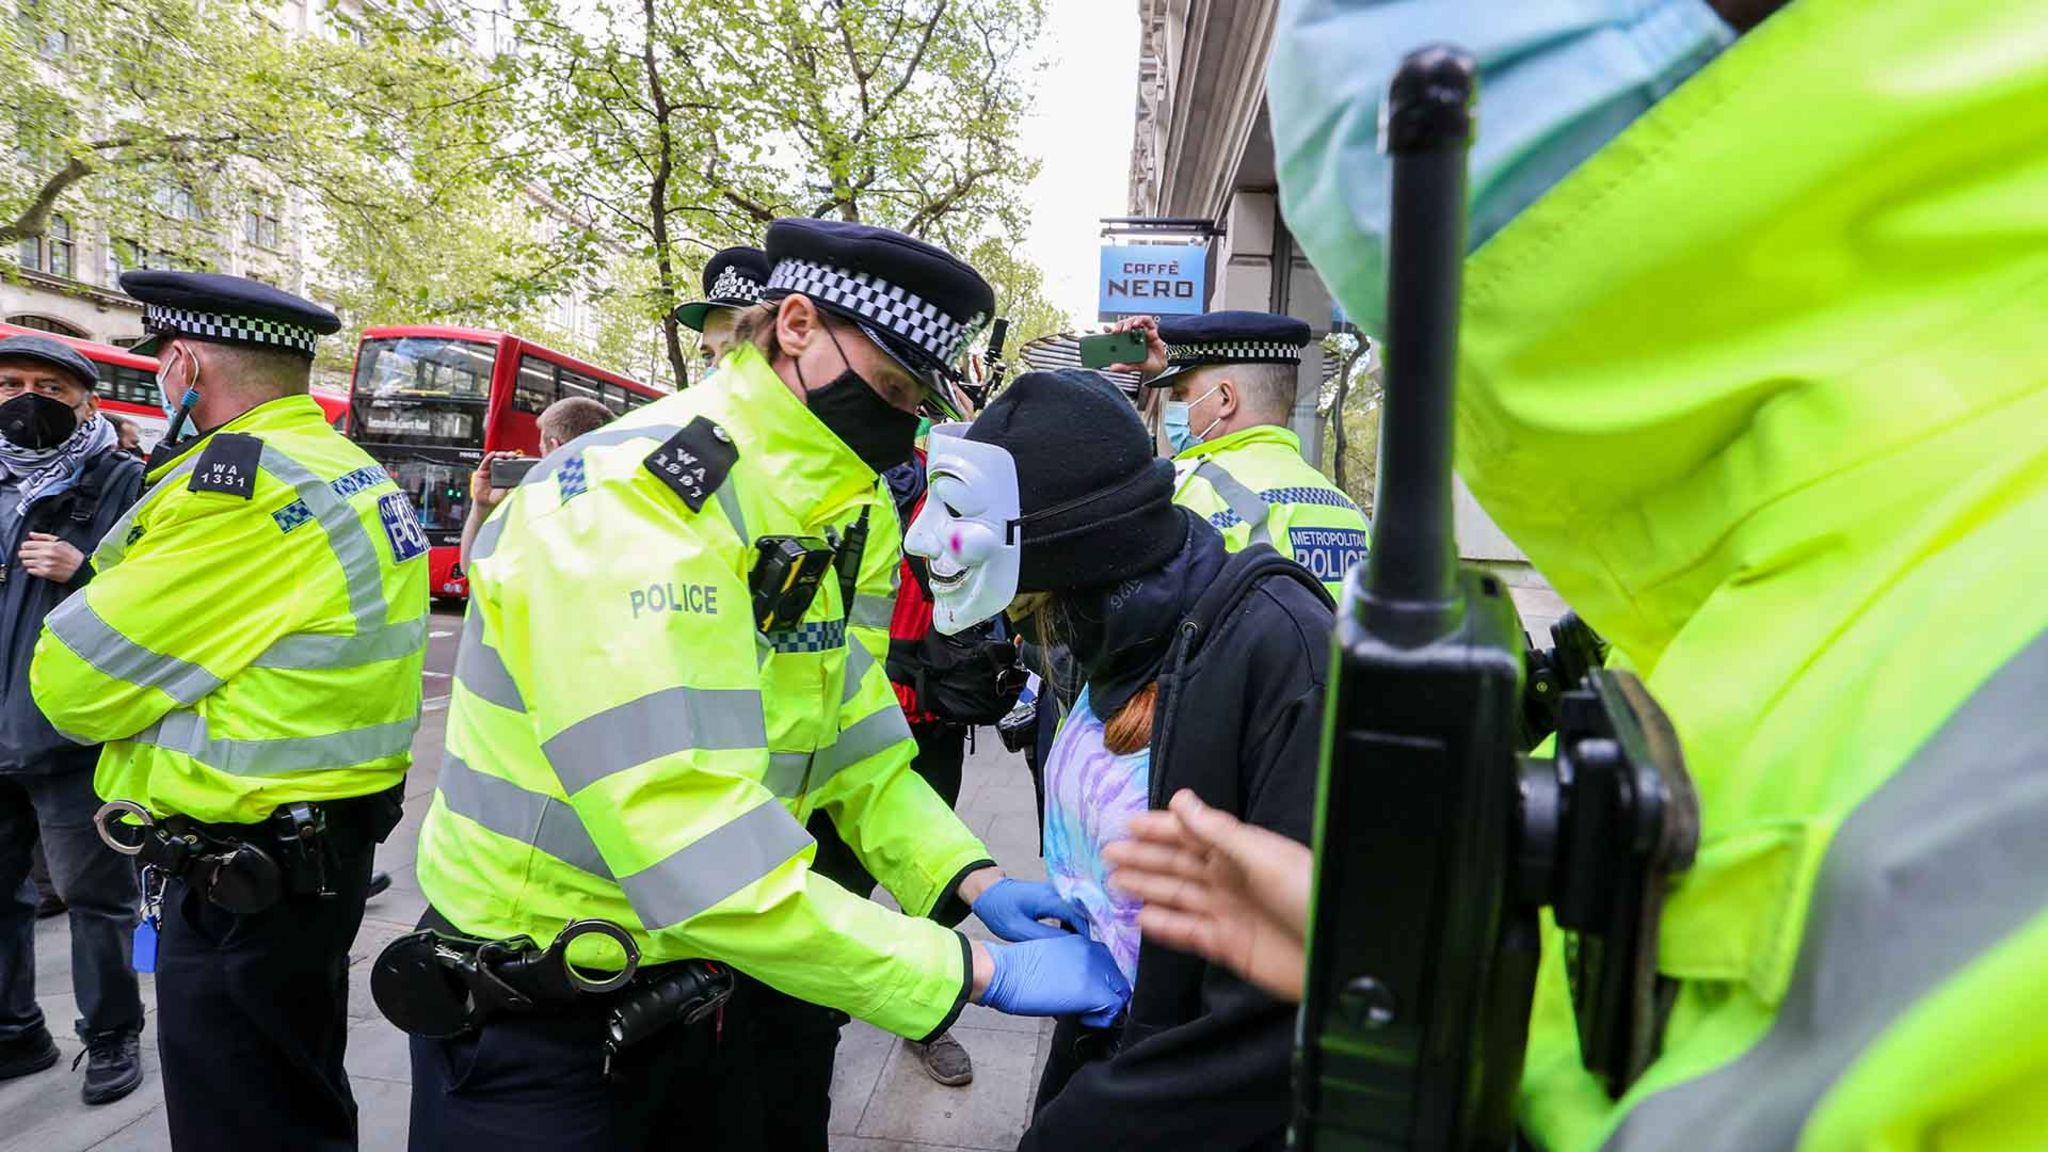 Police office stops and searches one of the pro-Palestinian demonstrator outside Elbit System HQ in London as demonstrators protest against Israeli air raids on Gaza Strip in central London, United Kingdom on May 11, 2021